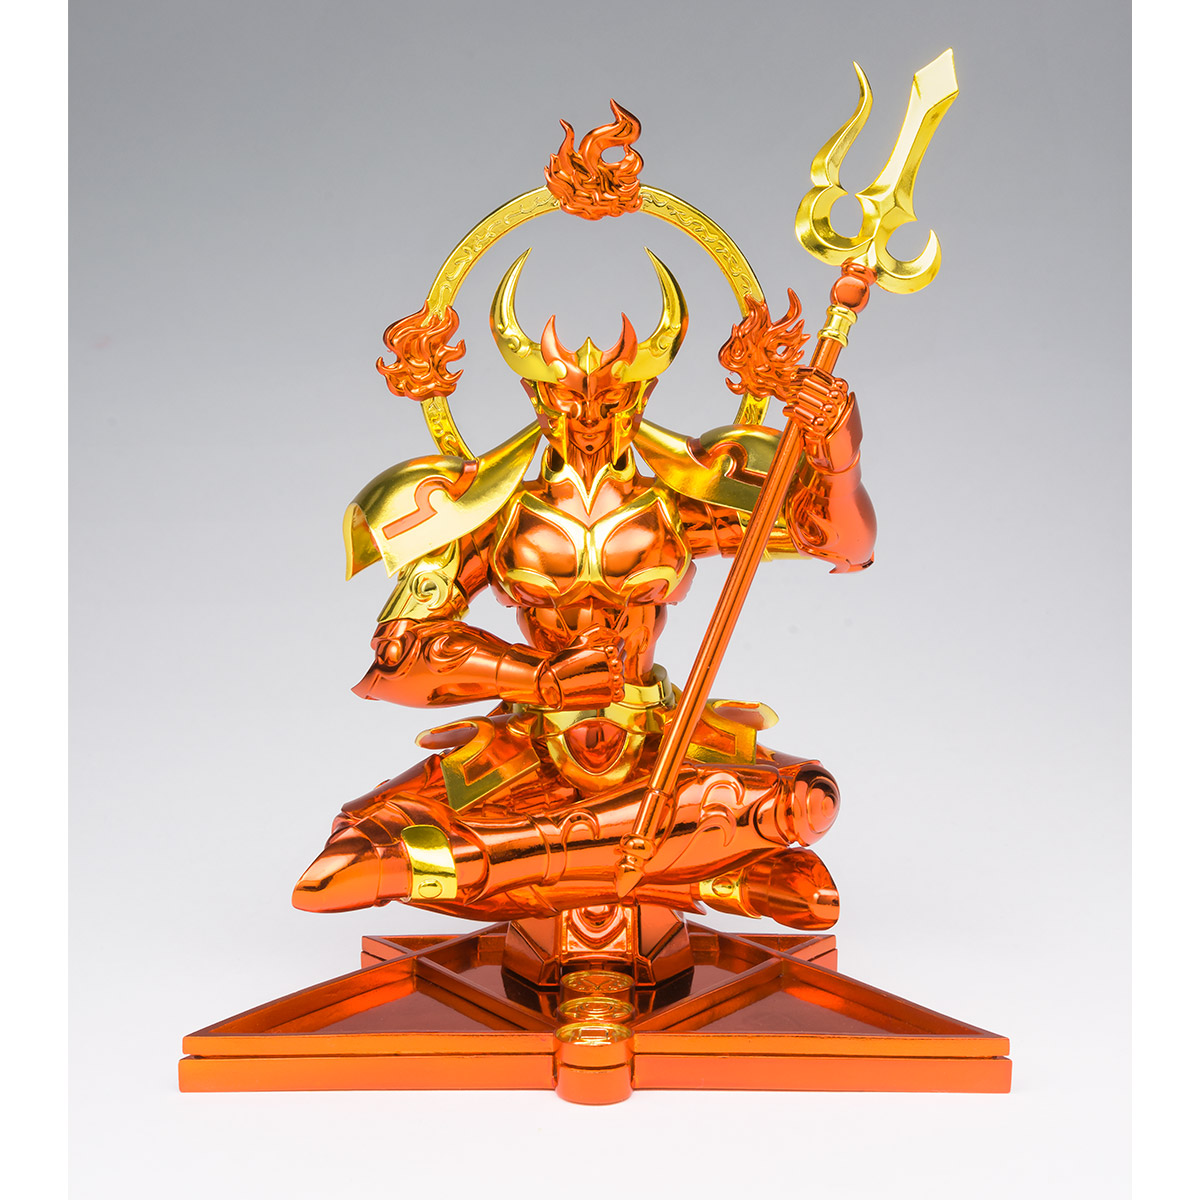 SAINT CLOTH MYTH EX CHRYSAOR KRISHNA